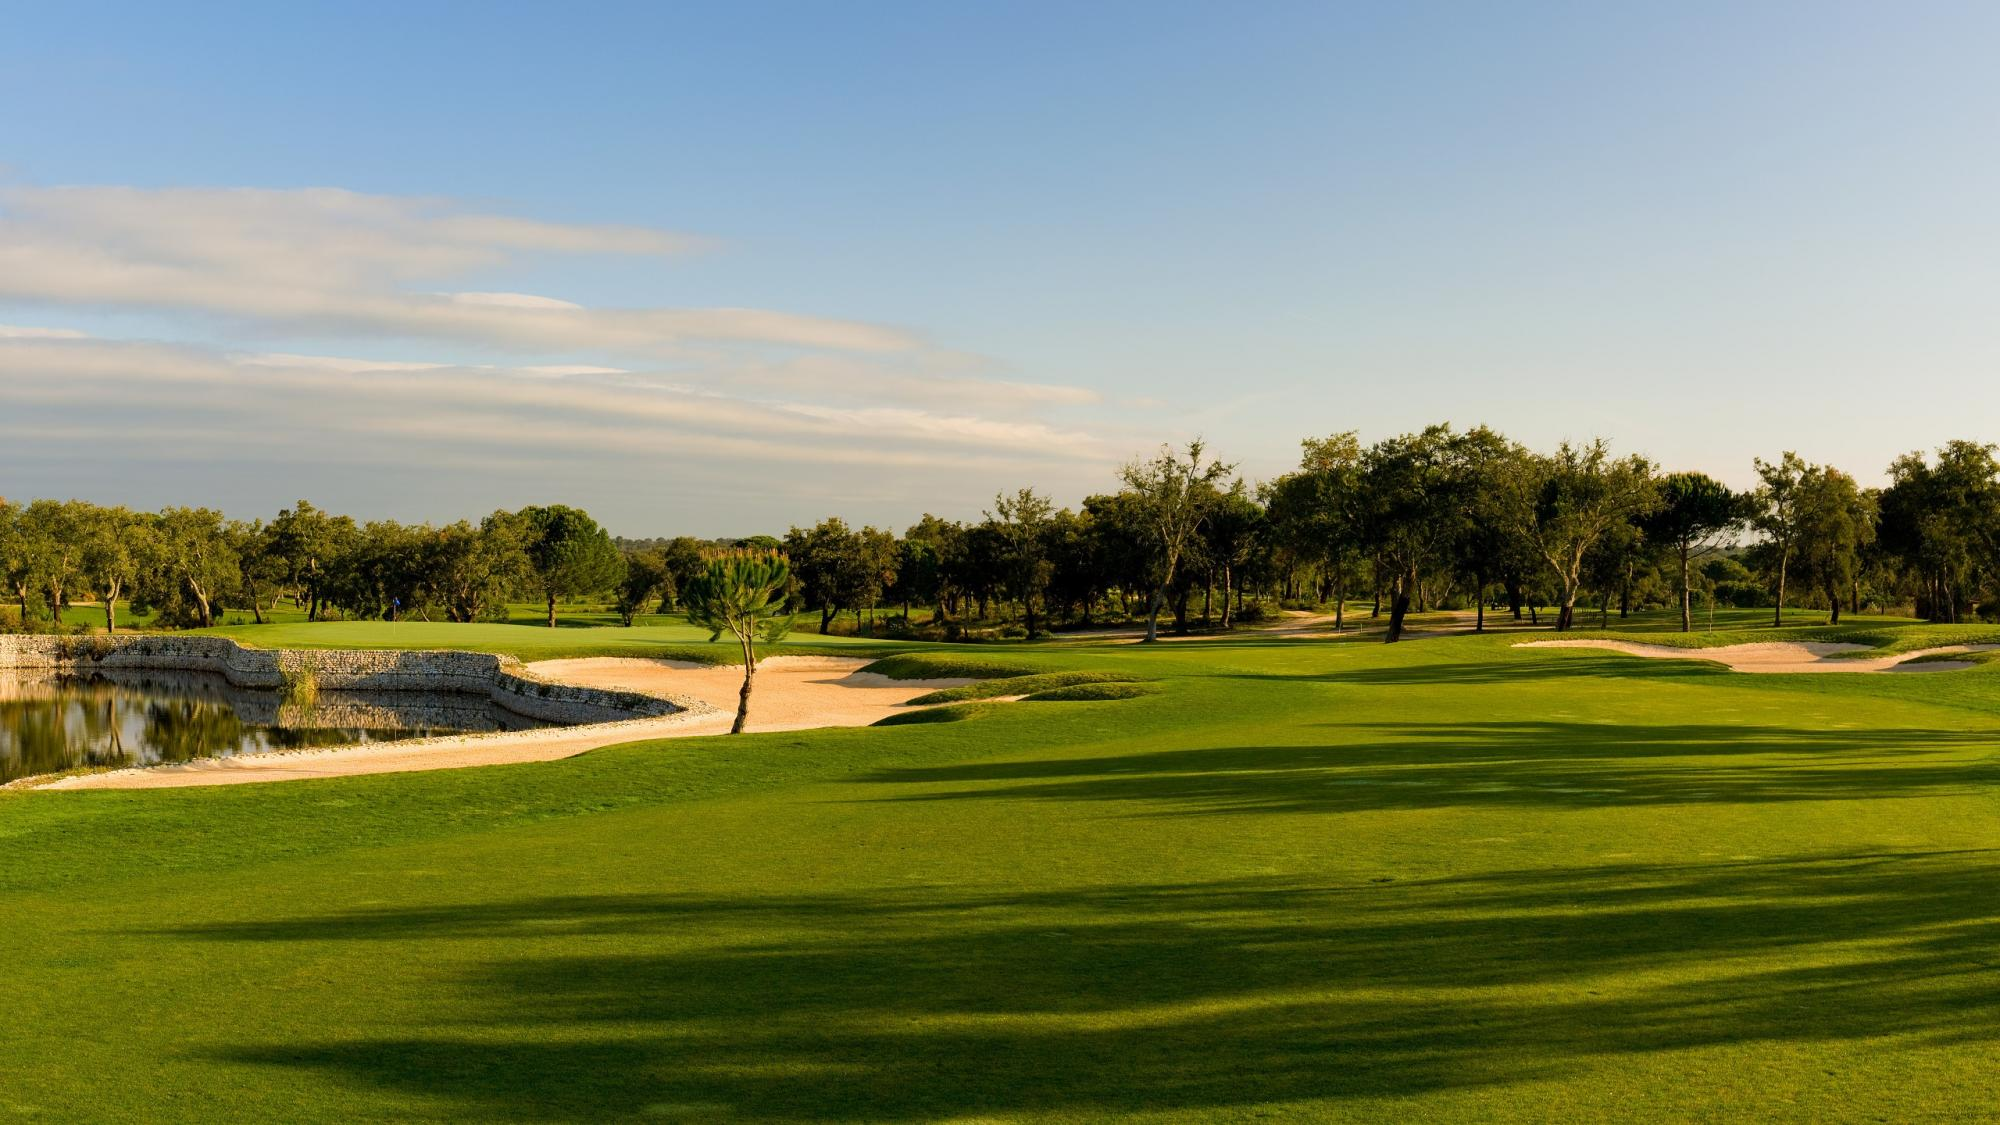 Riba Golfe 1  boasts lots of the preferred golf course near Lisbon